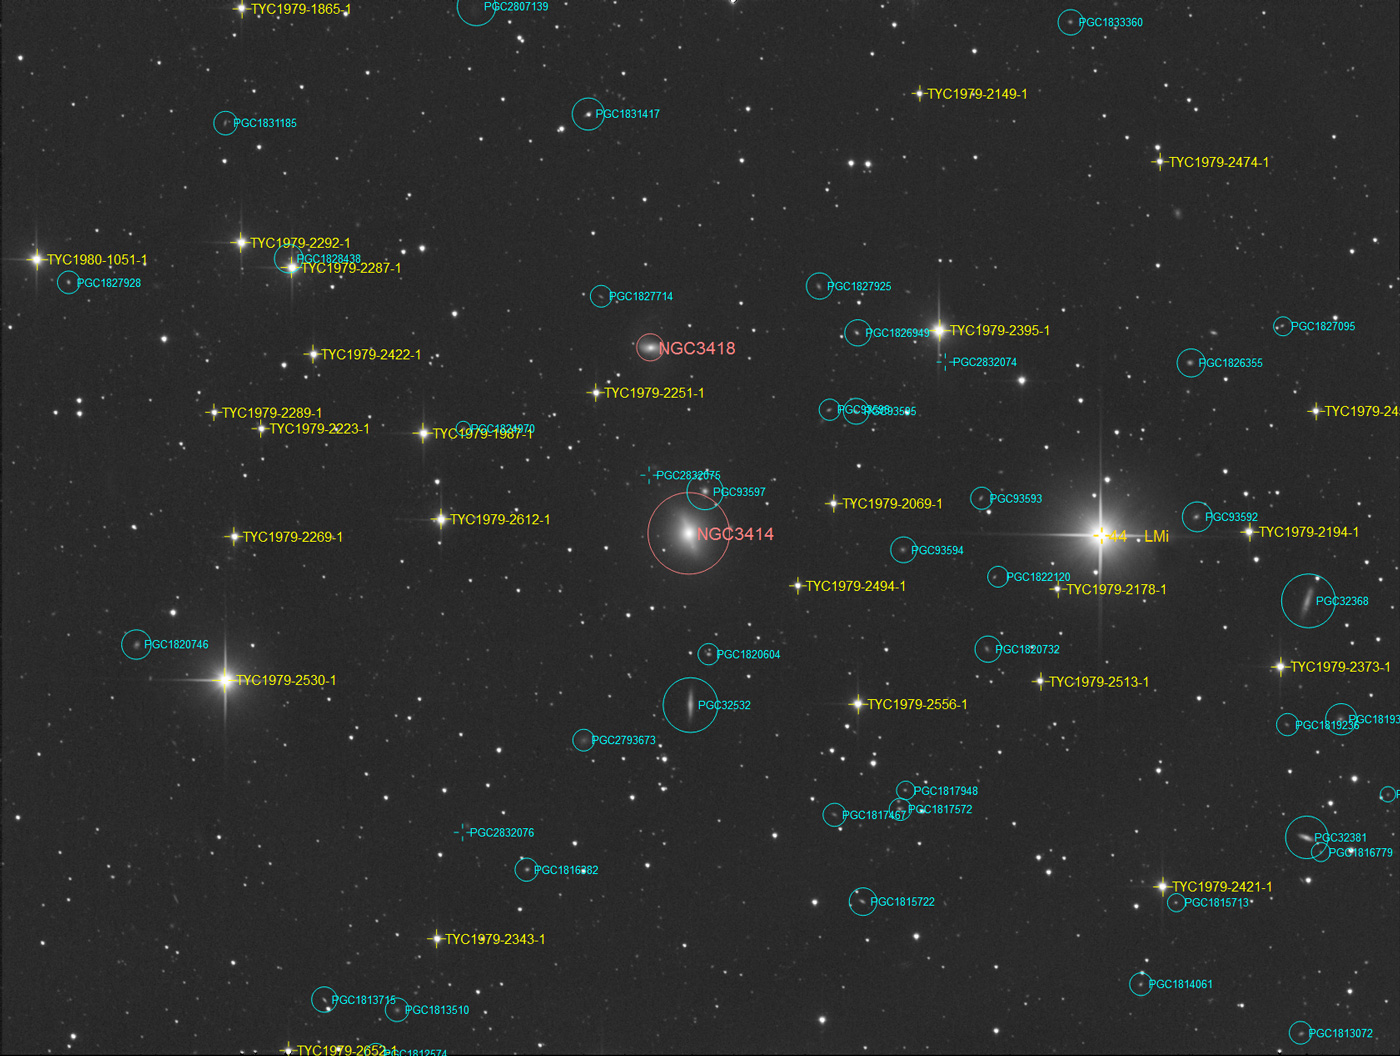 Ciel profond d'hiver - Page 4 Ngc3414_arp162__Annotated